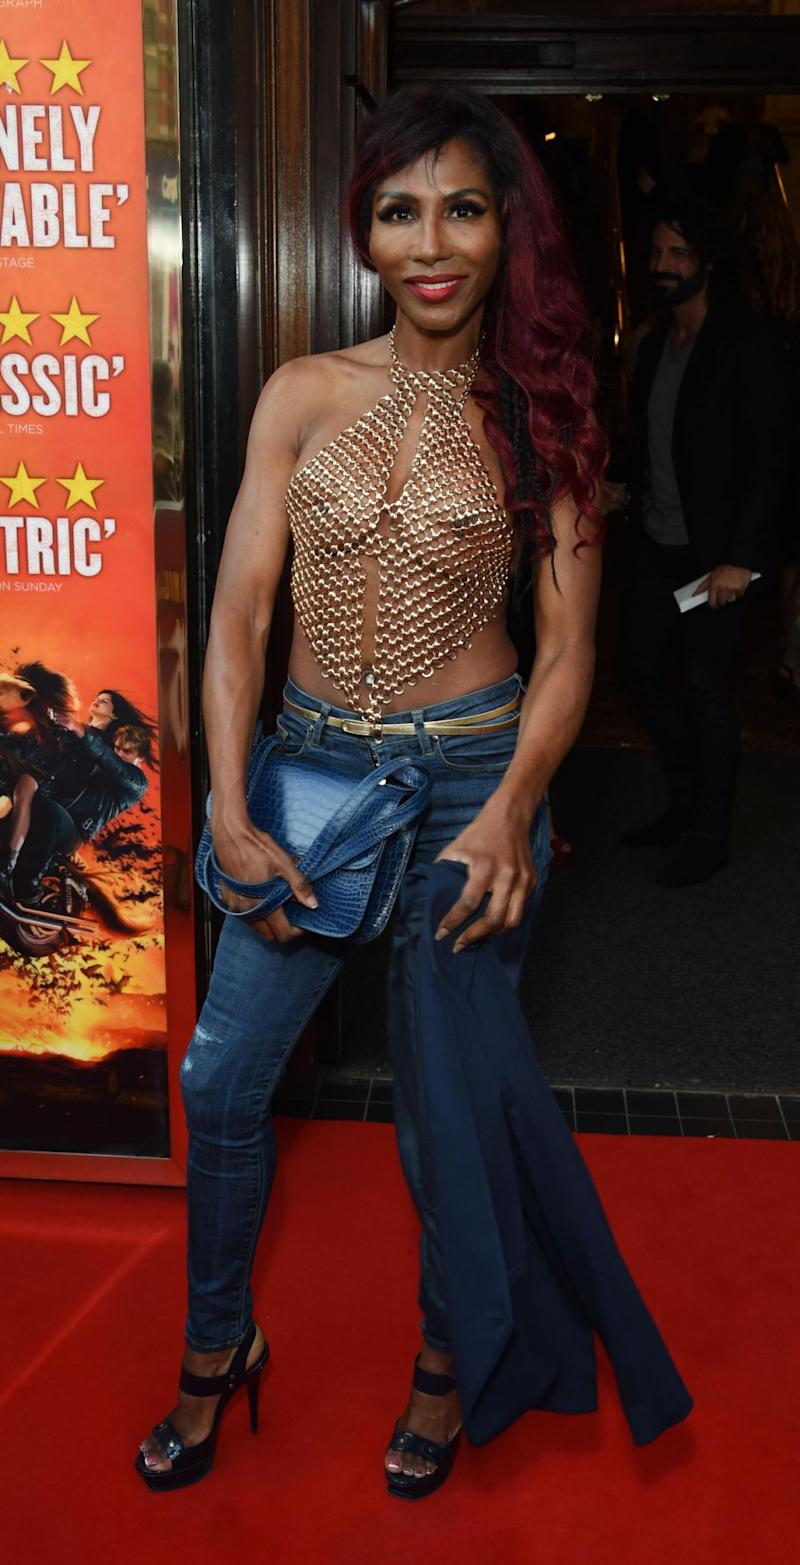 The 54-year-old 80s pop star stepped out at the Gala Night performance of Bat Out Of Hell The Musical, wearing a barely-there top which could easily have been mistaken for a chunky necklace. Source: Getty